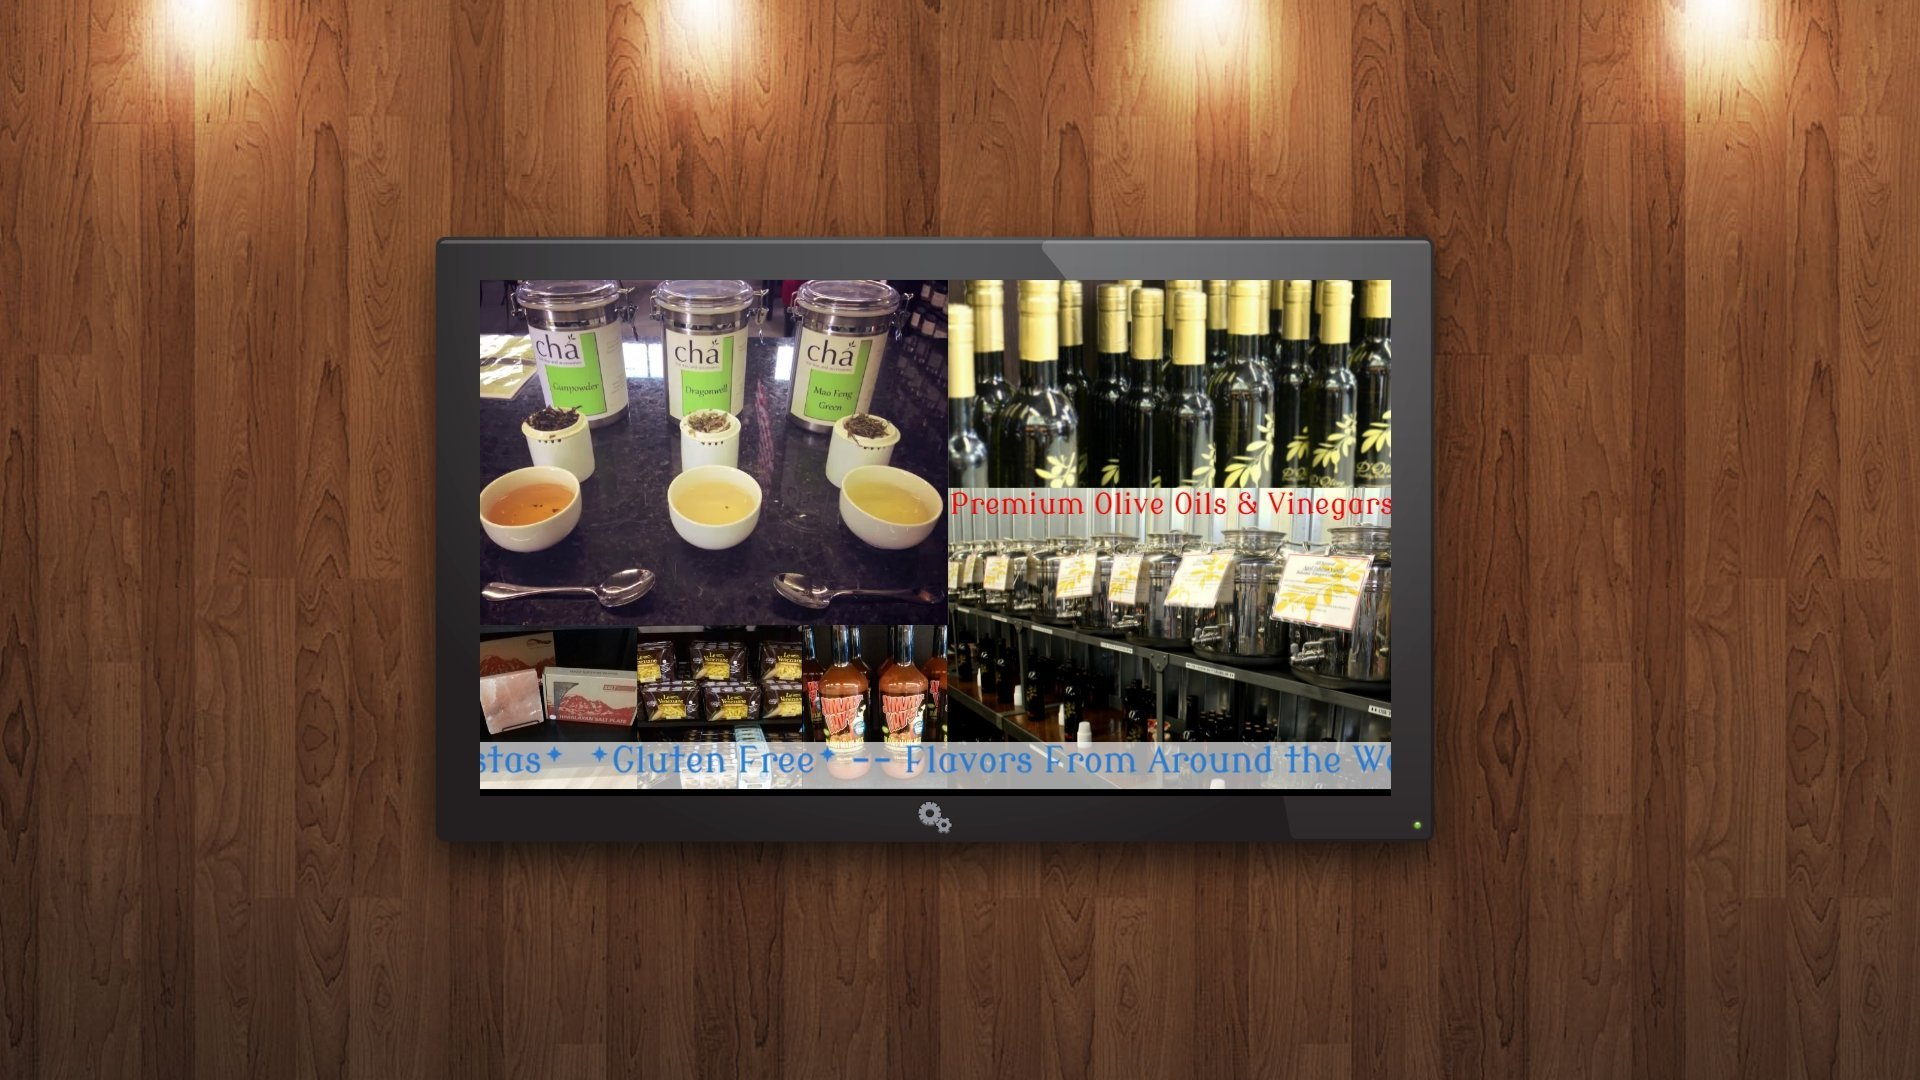 SmartSign2go Digital Signage Player, Turns any TV into a Sign! Simple Cloud-based Software for Non-Technical People. Google Chromebox Player, Custom Design and Free Software Trial Included. by SmartSign2go (Image #7)